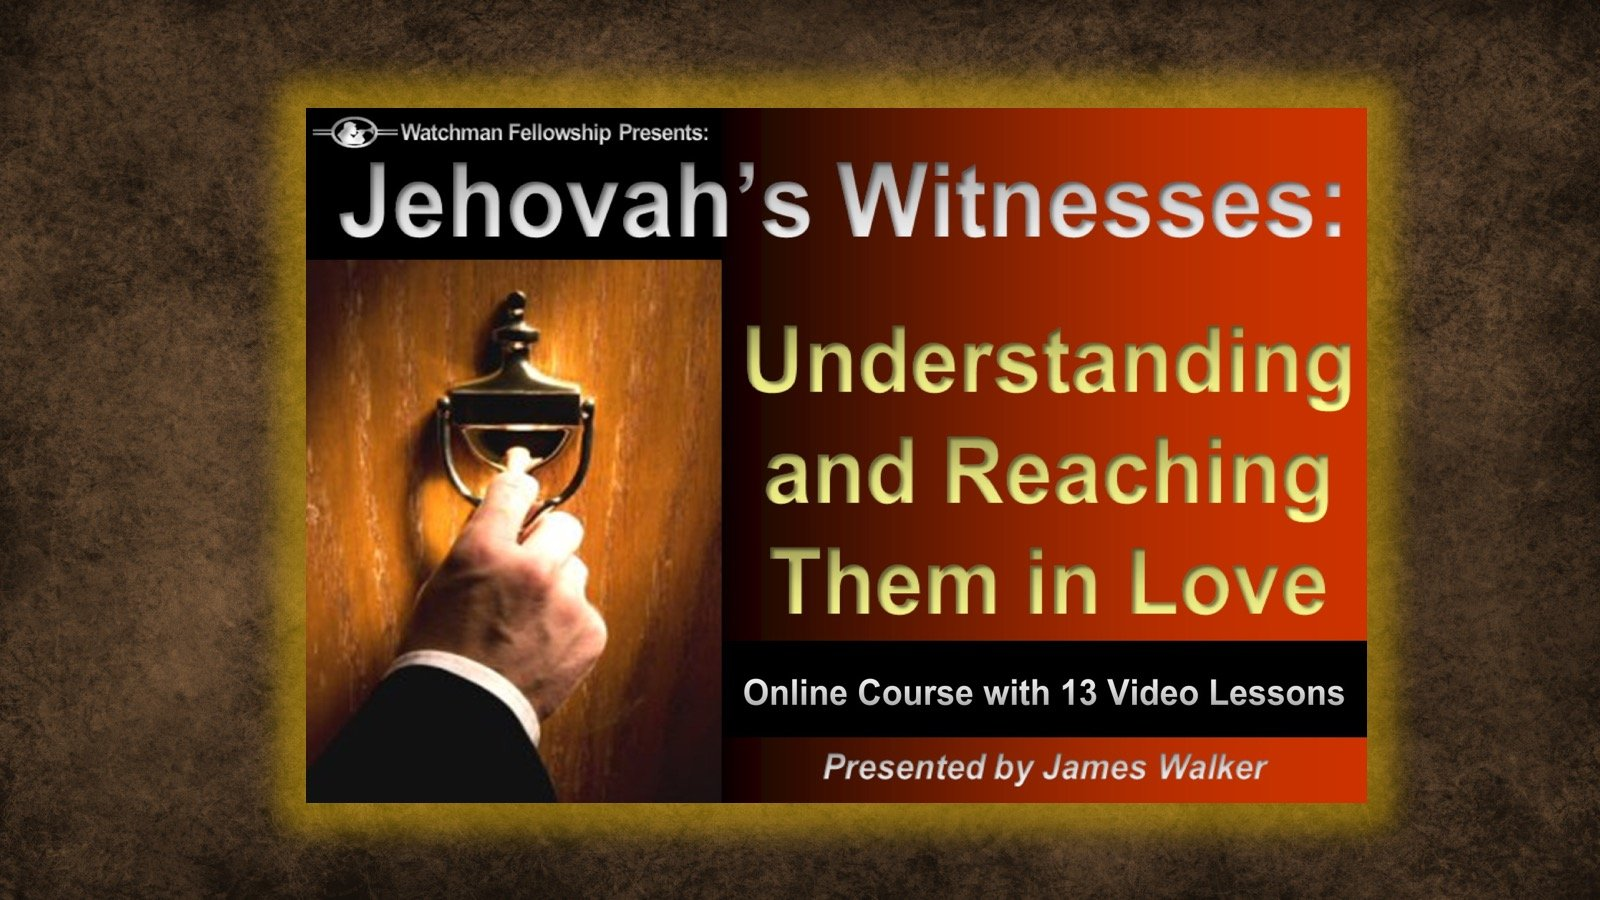 Jehovah's Witnesses: Understanding and Reaching Them in Love